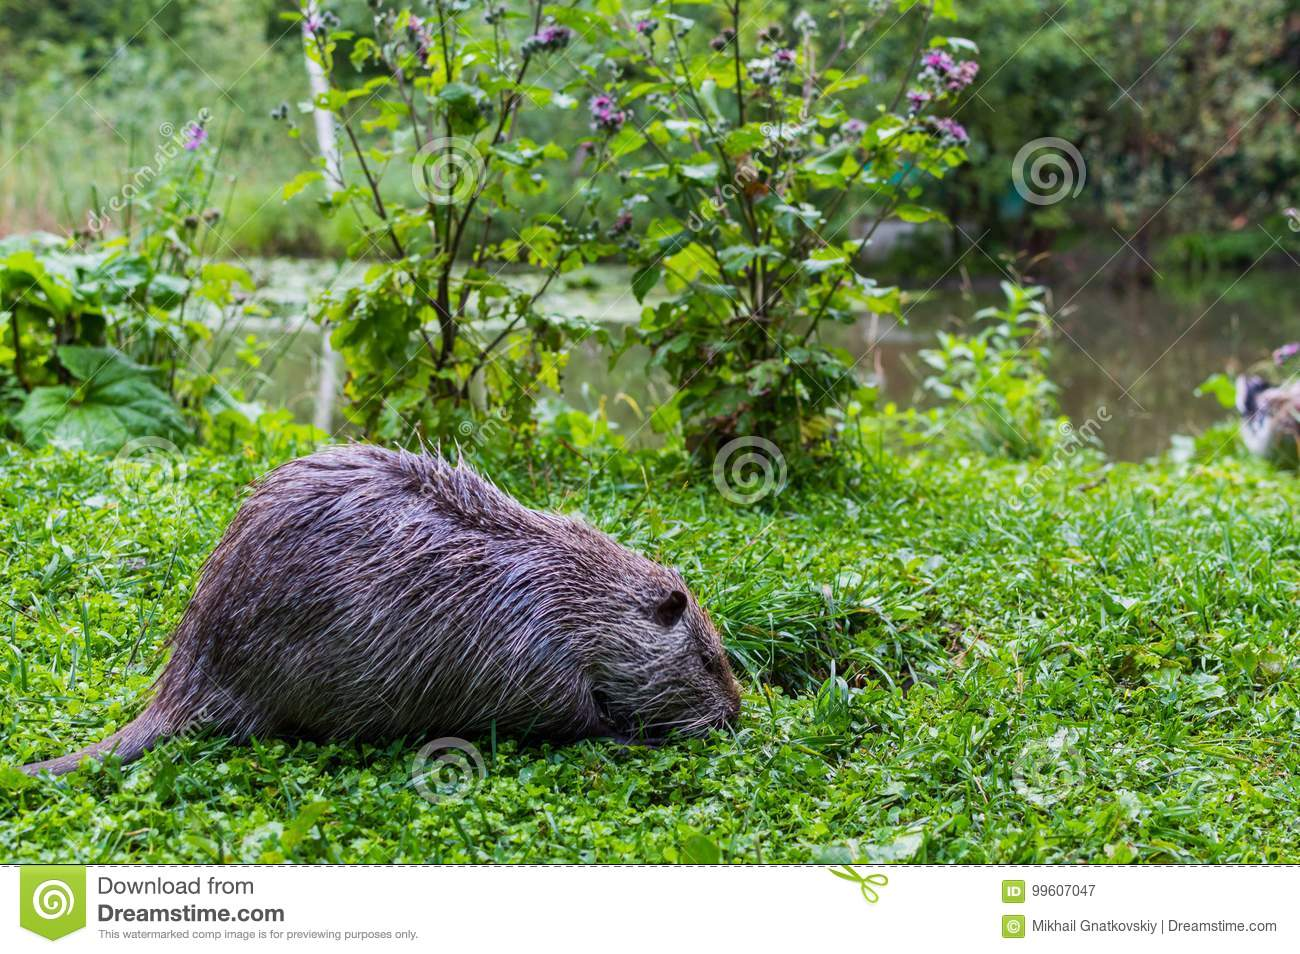 Close up photo of a nutria, also called coypu or river rat, against green background